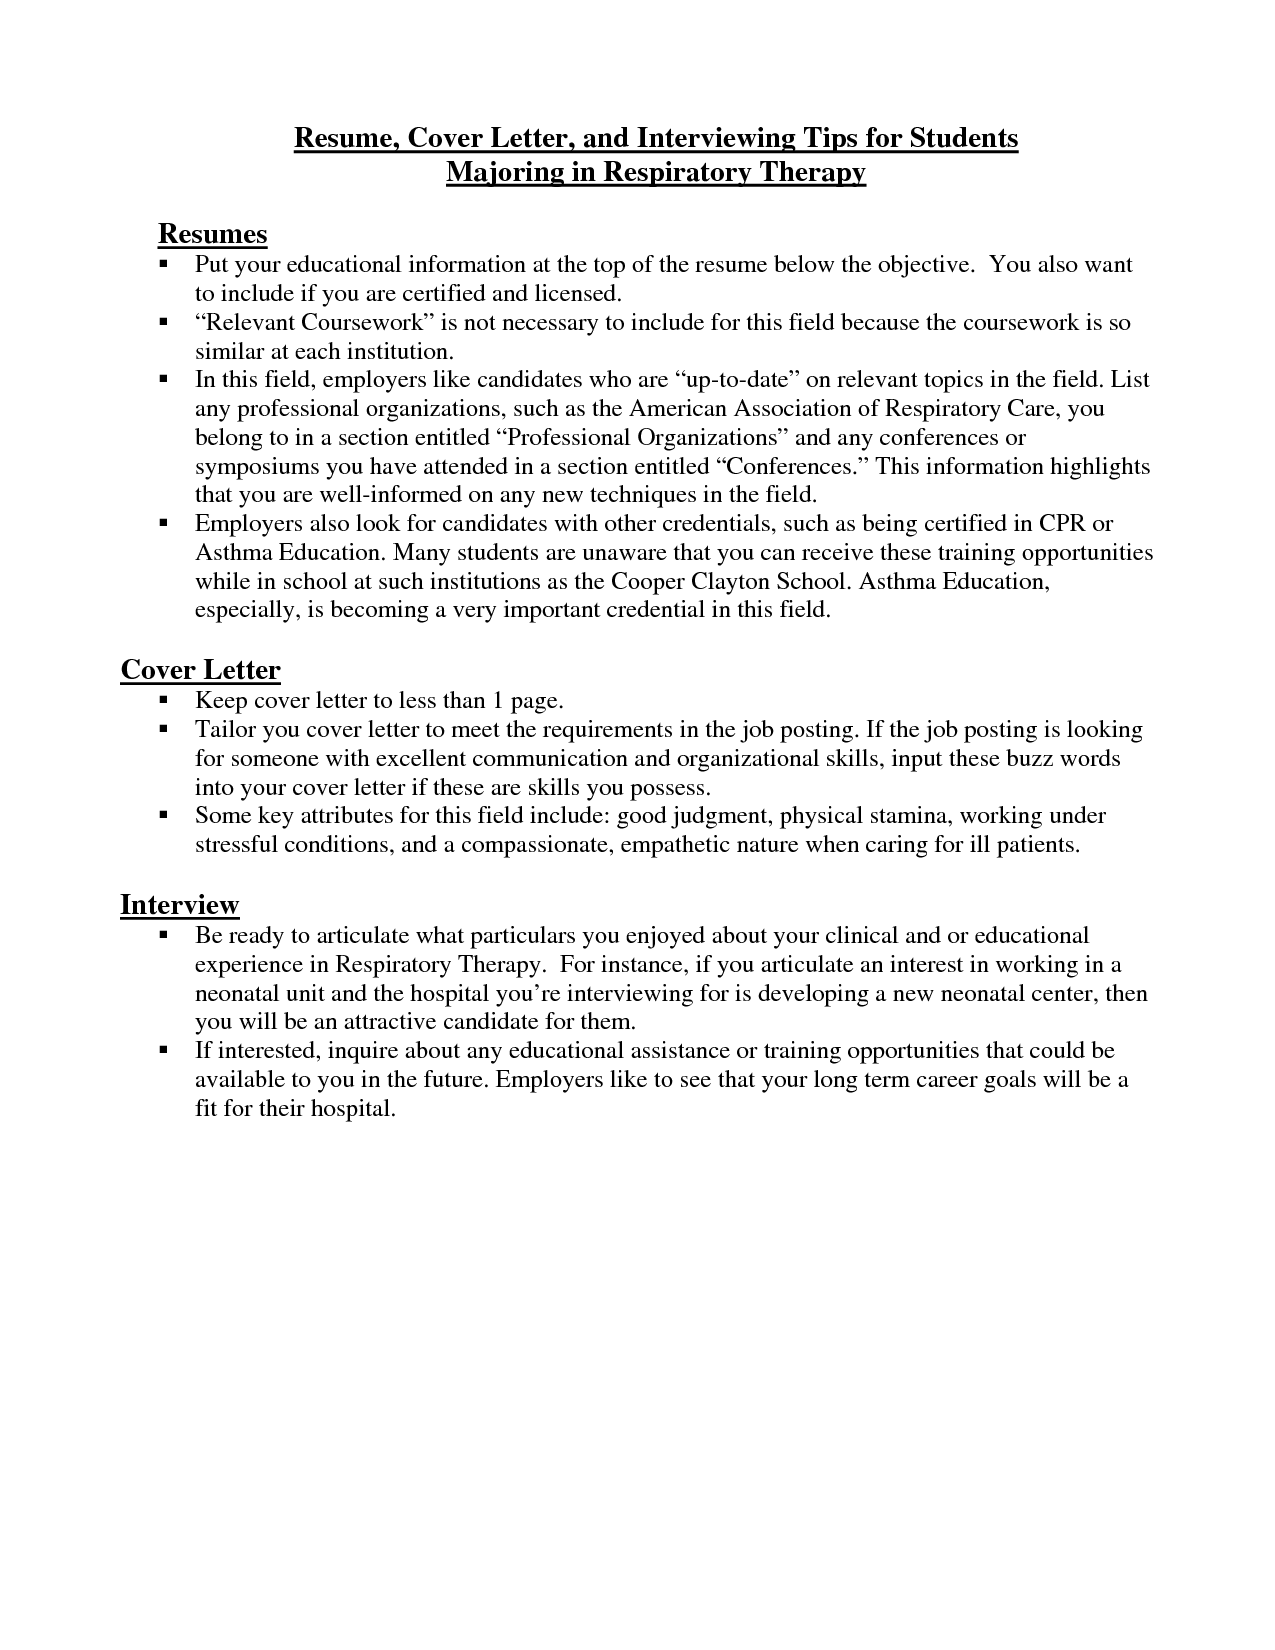 respiratory therapist cover letter  Resume Cover Letter and Interviewing Tips for Students